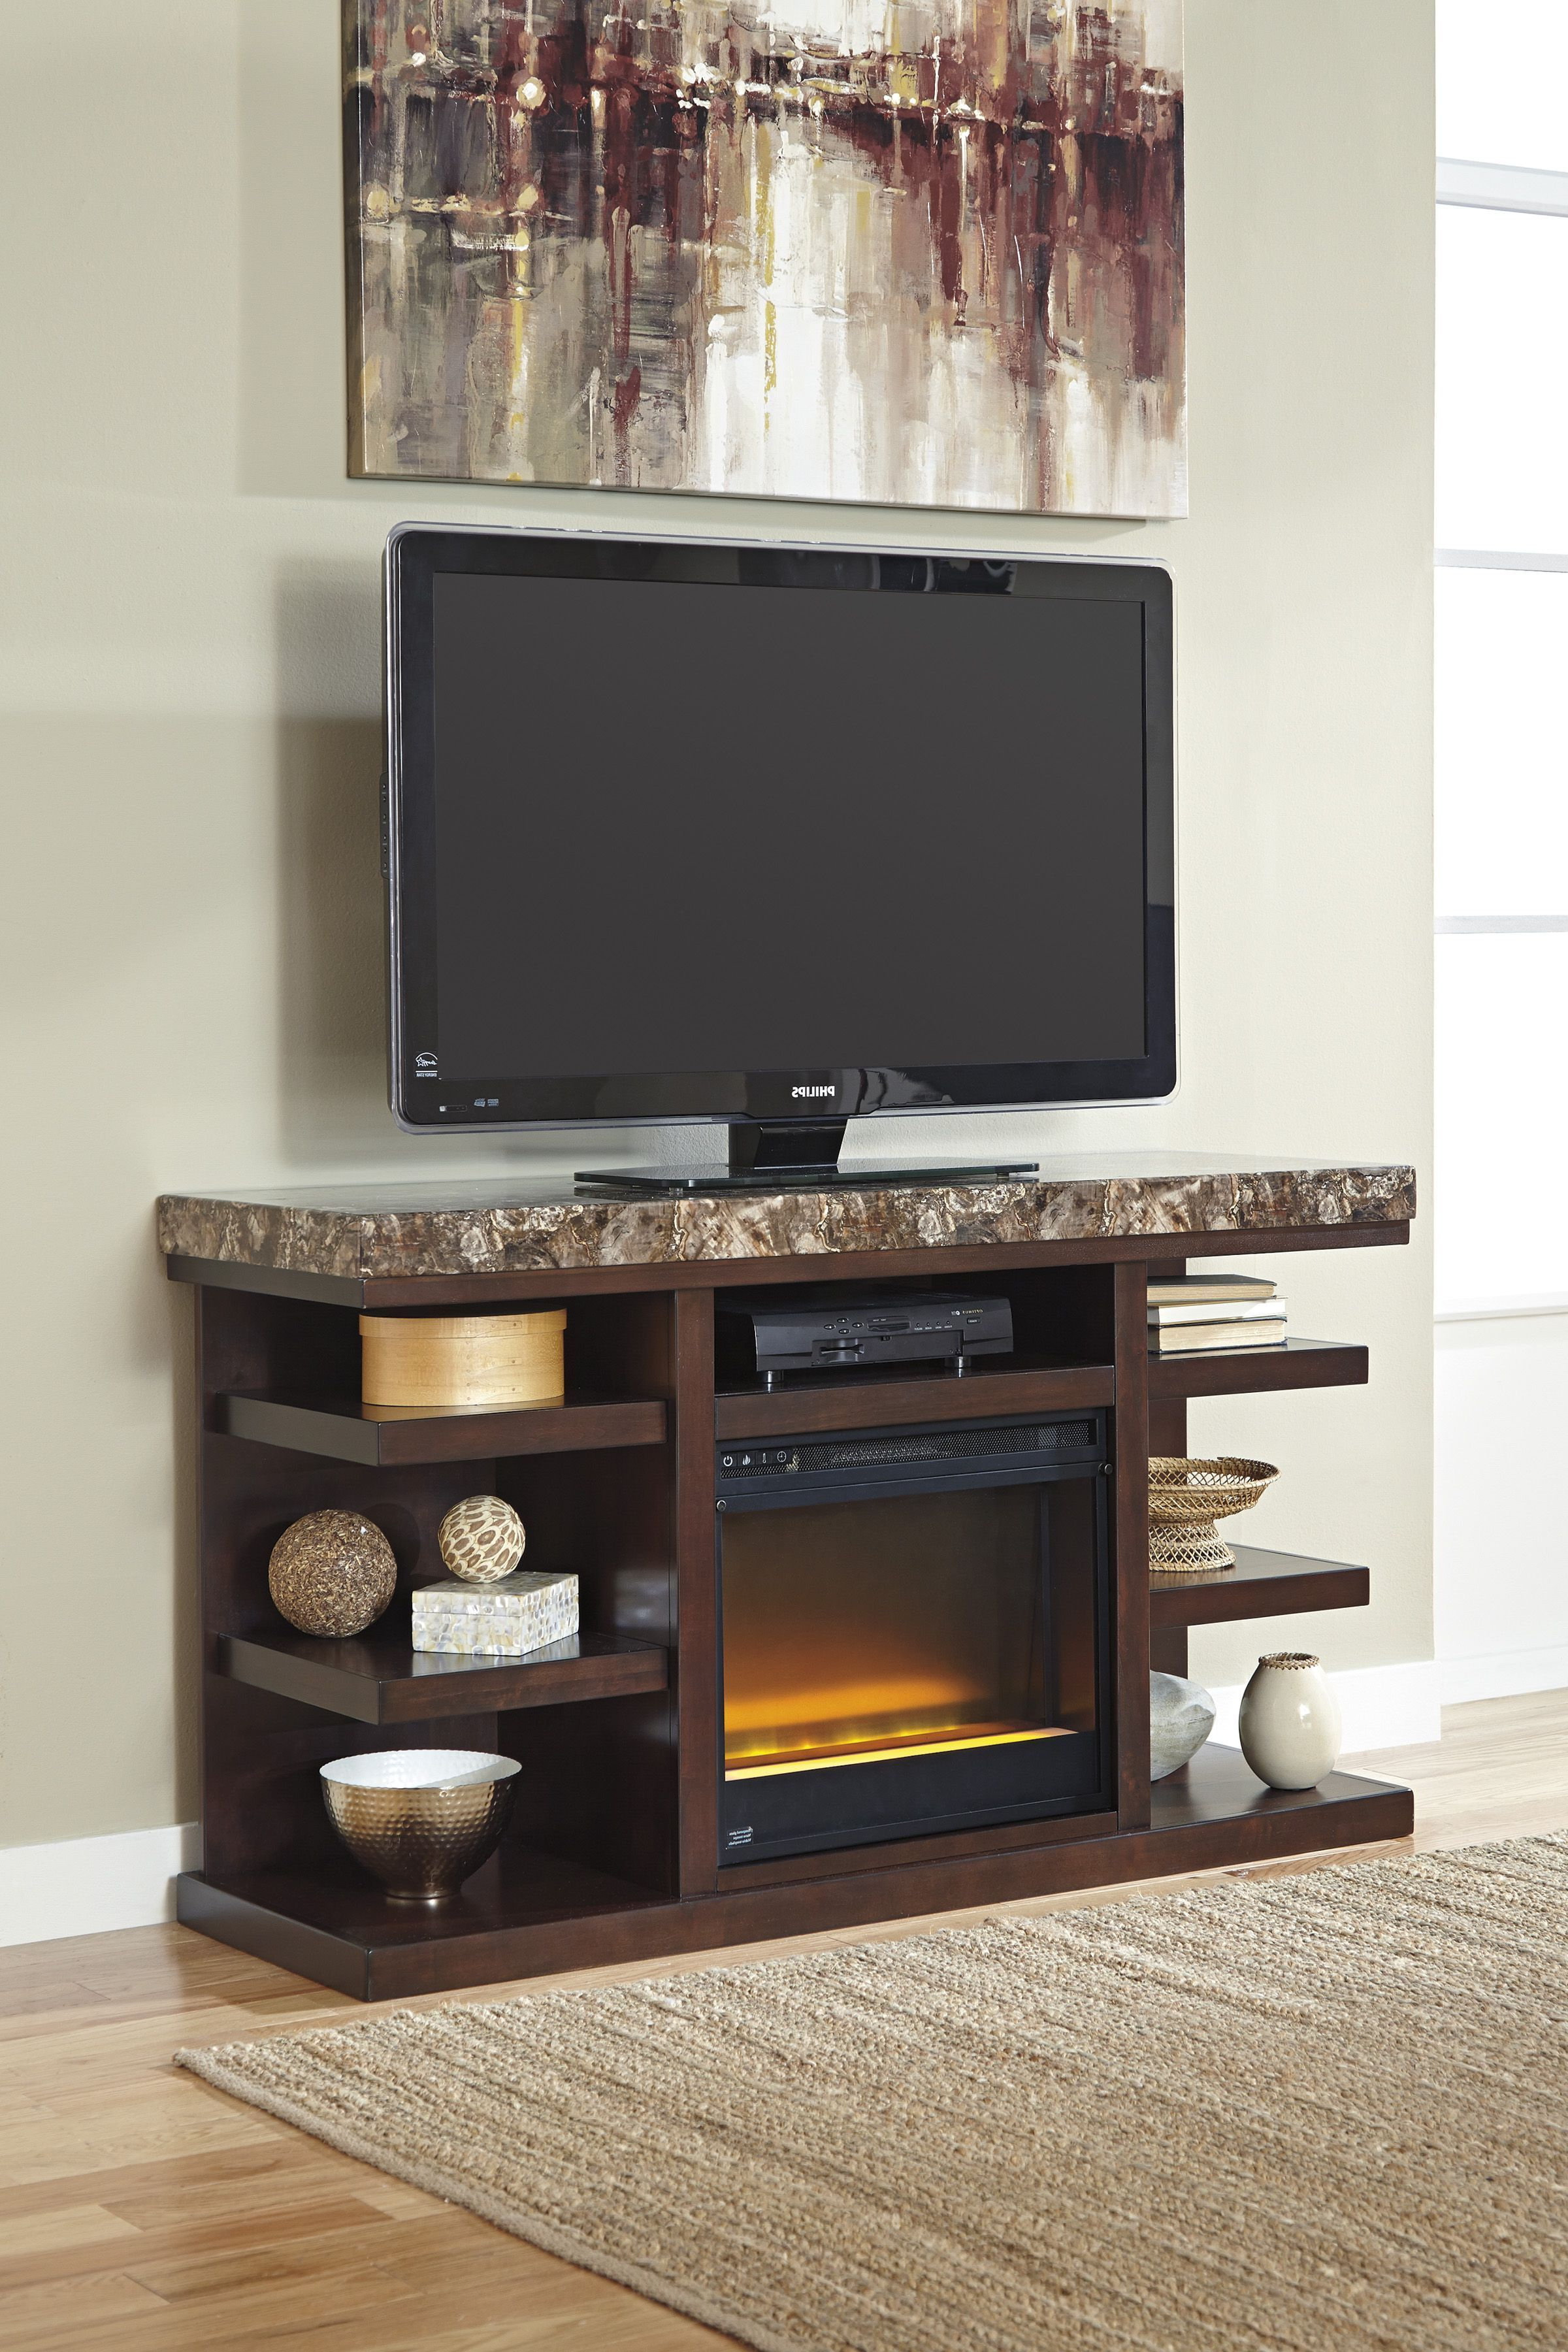 Projects To Try With Edwin Black 64 Inch Tv Stands (Gallery 6 of 20)